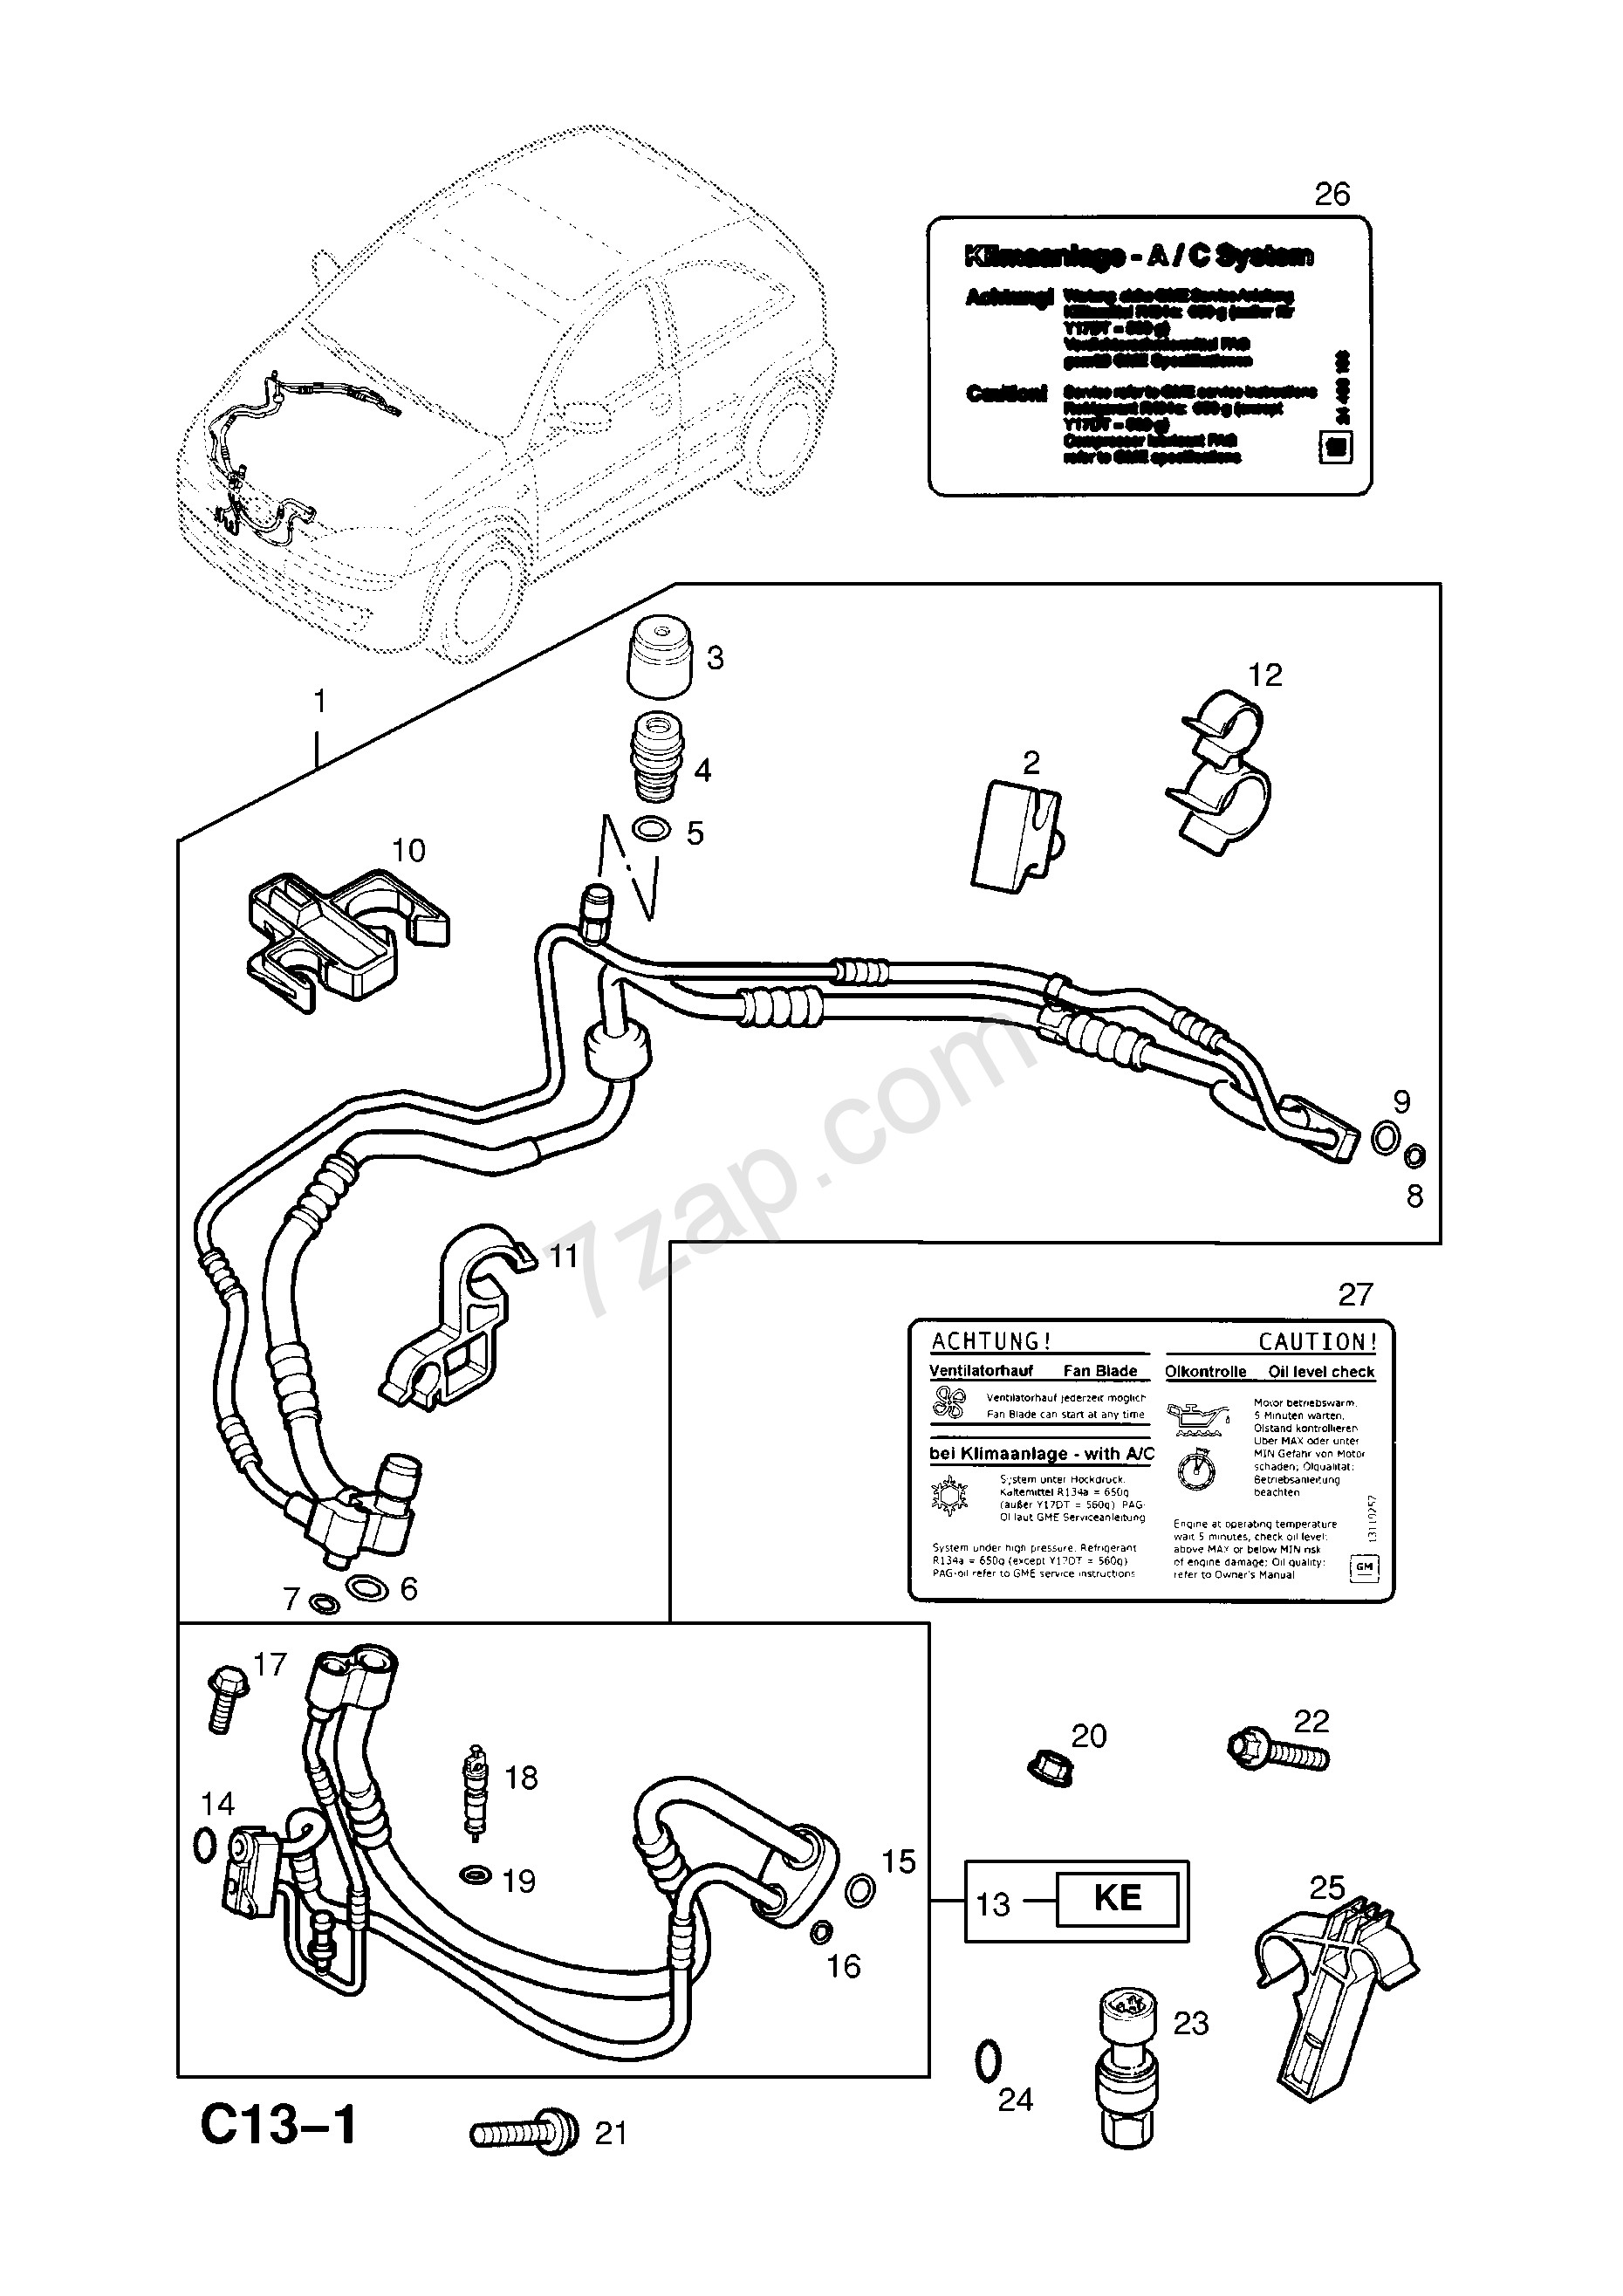 Vauxhall Corsa Engine Diagram Refrigerant Hose and Liquid Pipes Contd [z16se[l55] Petrol Engine Of Vauxhall Corsa Engine Diagram